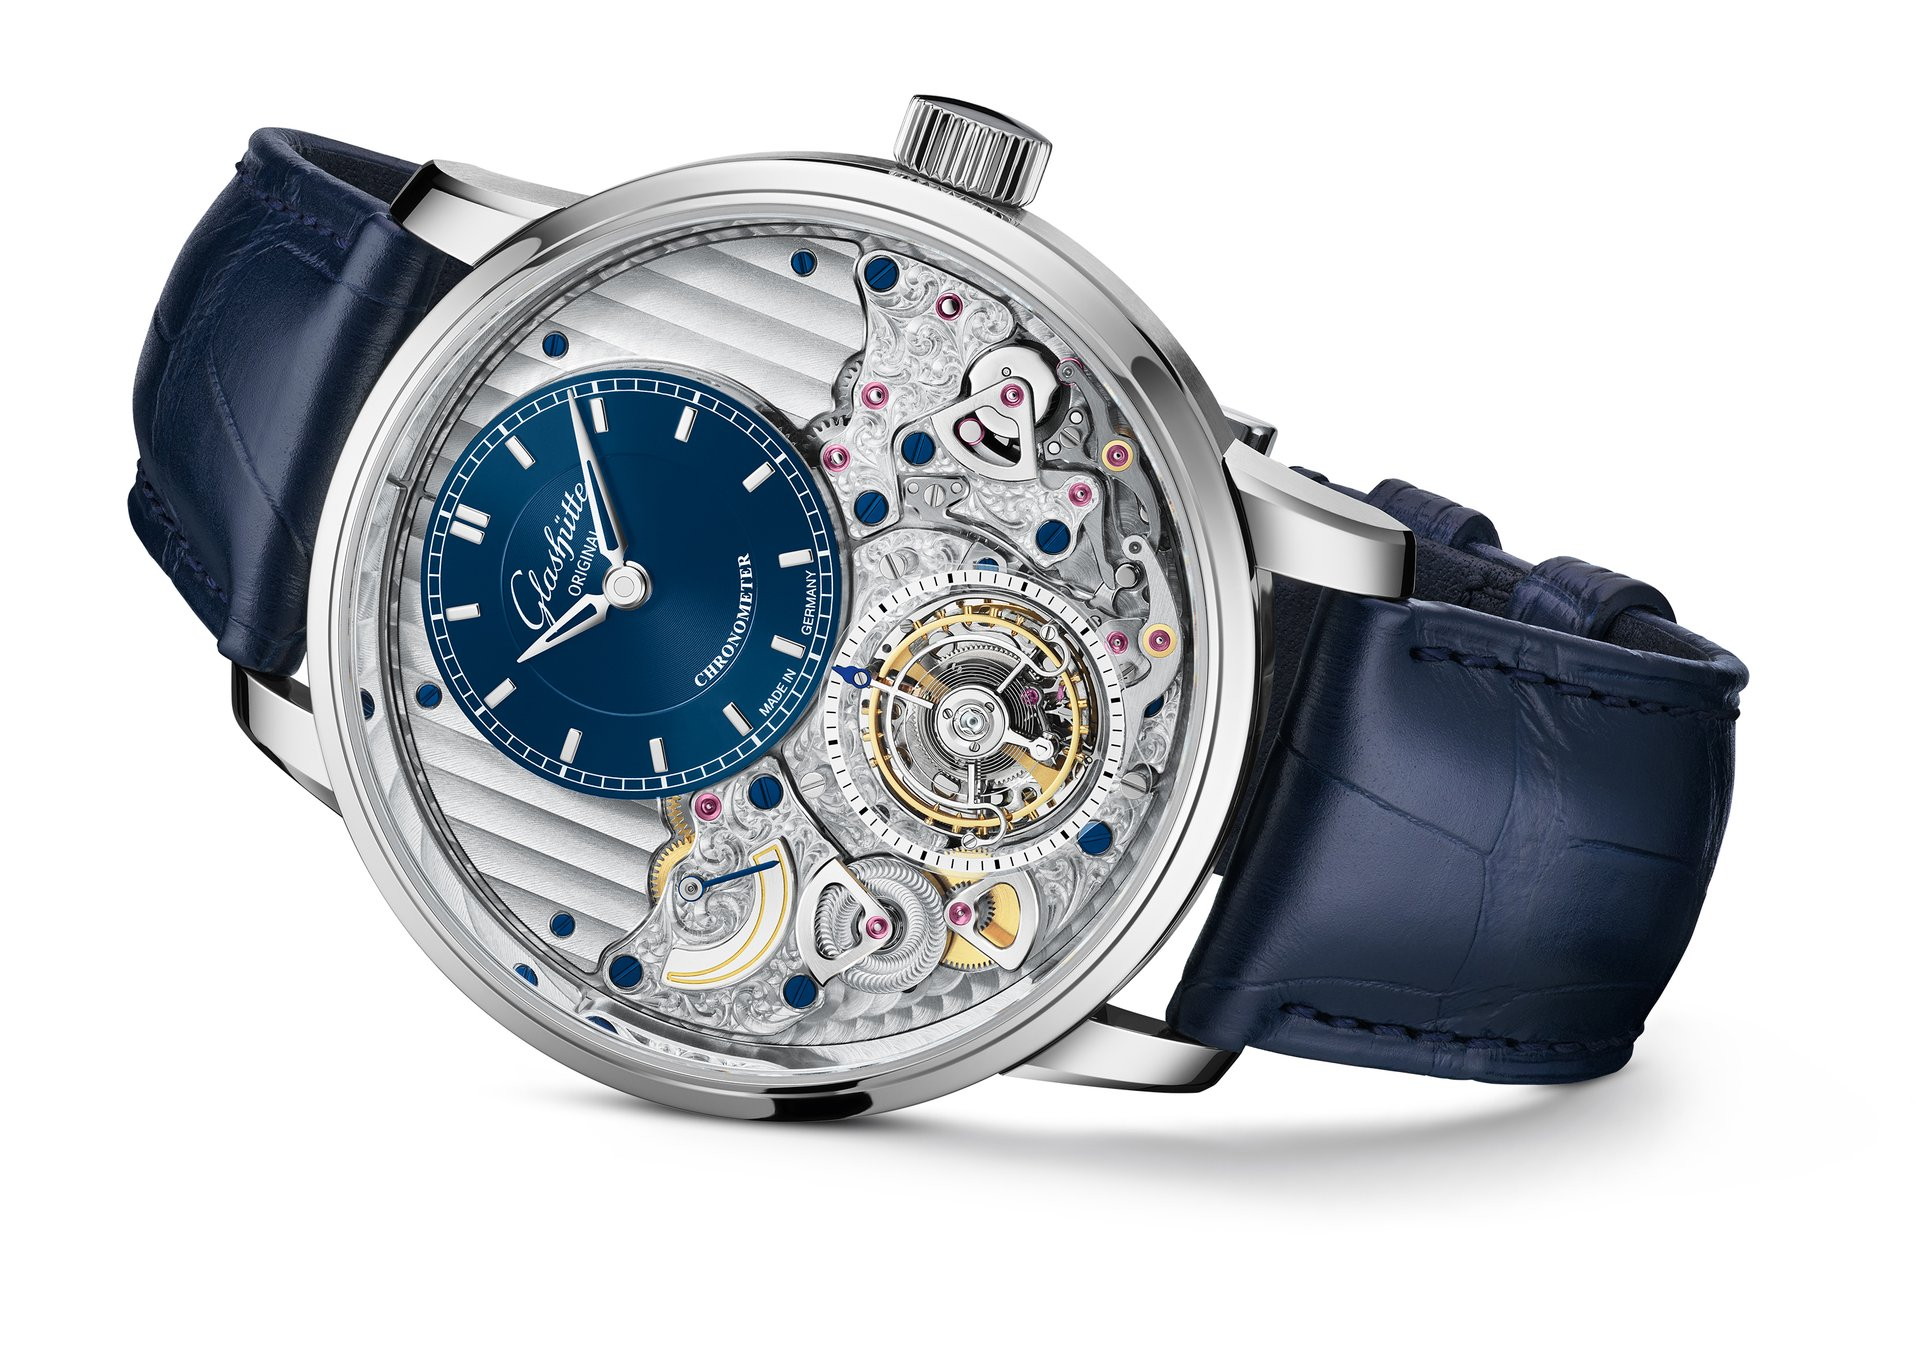 Today Glashütte Original presents Alfred Helwig's invention in an advanced and highly sophisticated version - the Glashütte Original Senator Chronometer Tourbillon – Limited Edition.